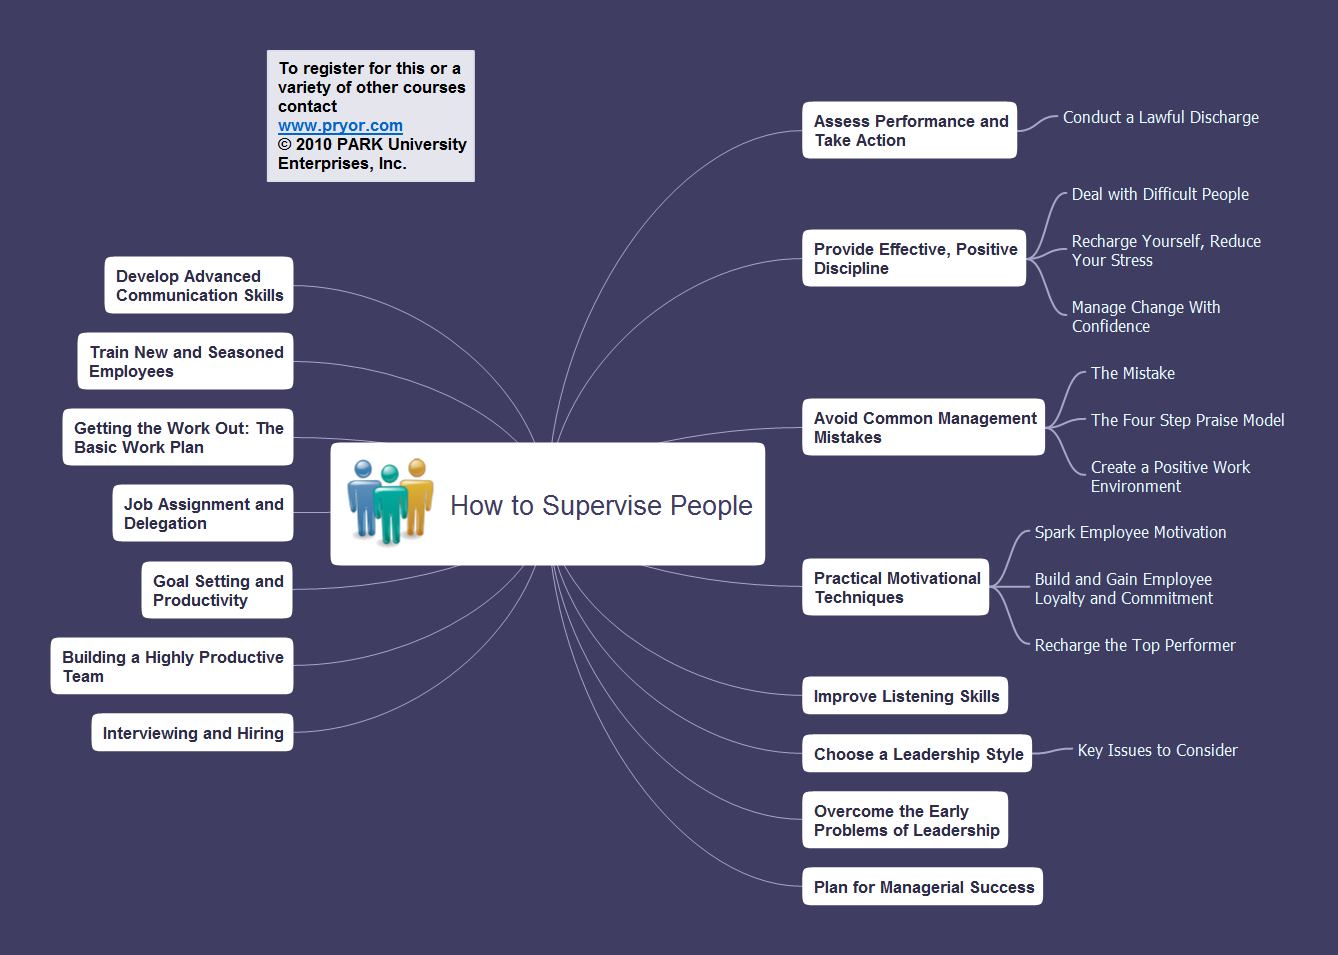 Mindmap presentation - Pryor - How to supervise people